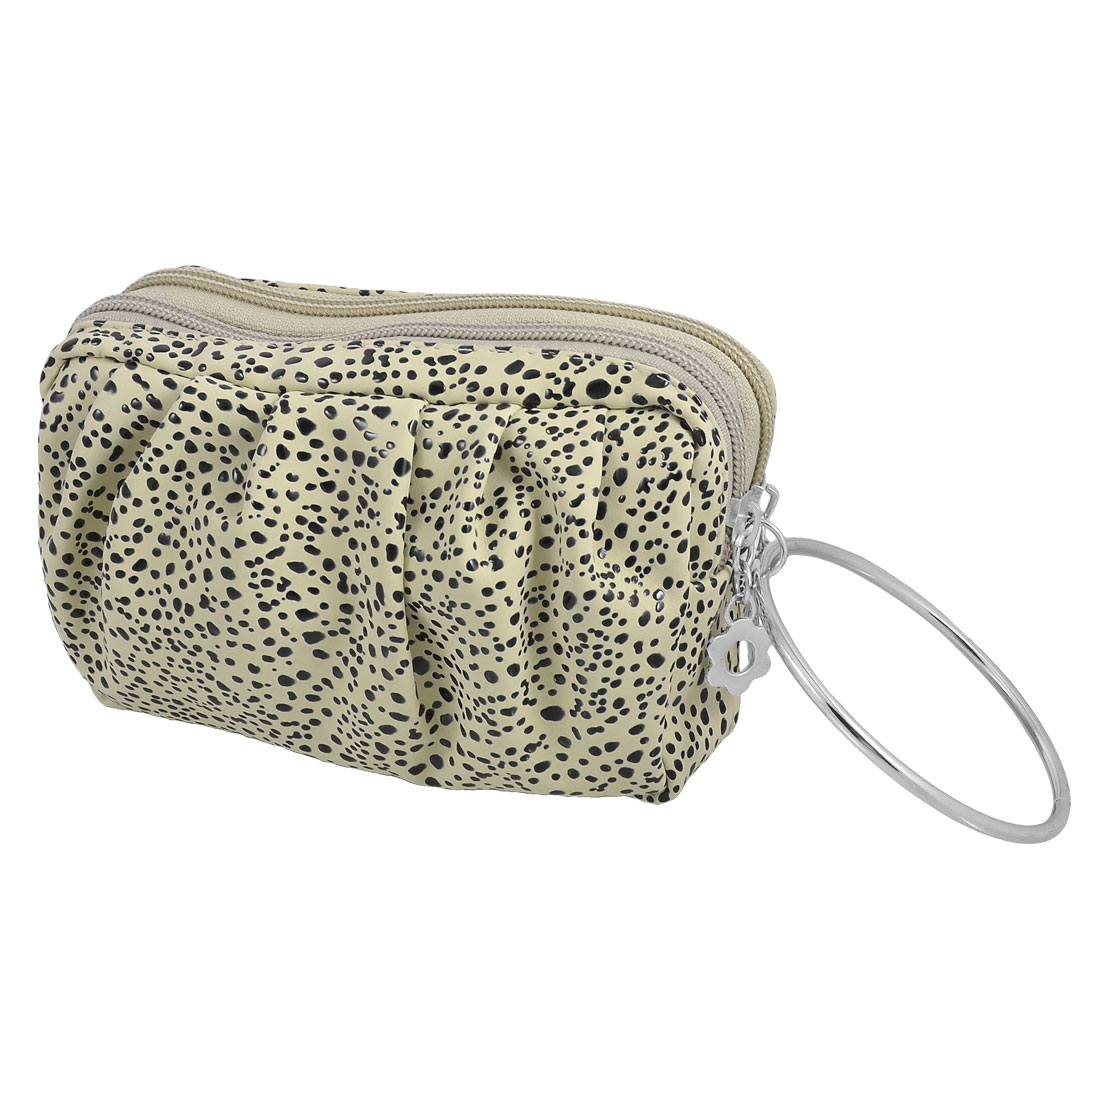 Unique Bargains Double Pocket Metal Ring Zipped Beige Faux Leather Spotted Wristlet Pouch